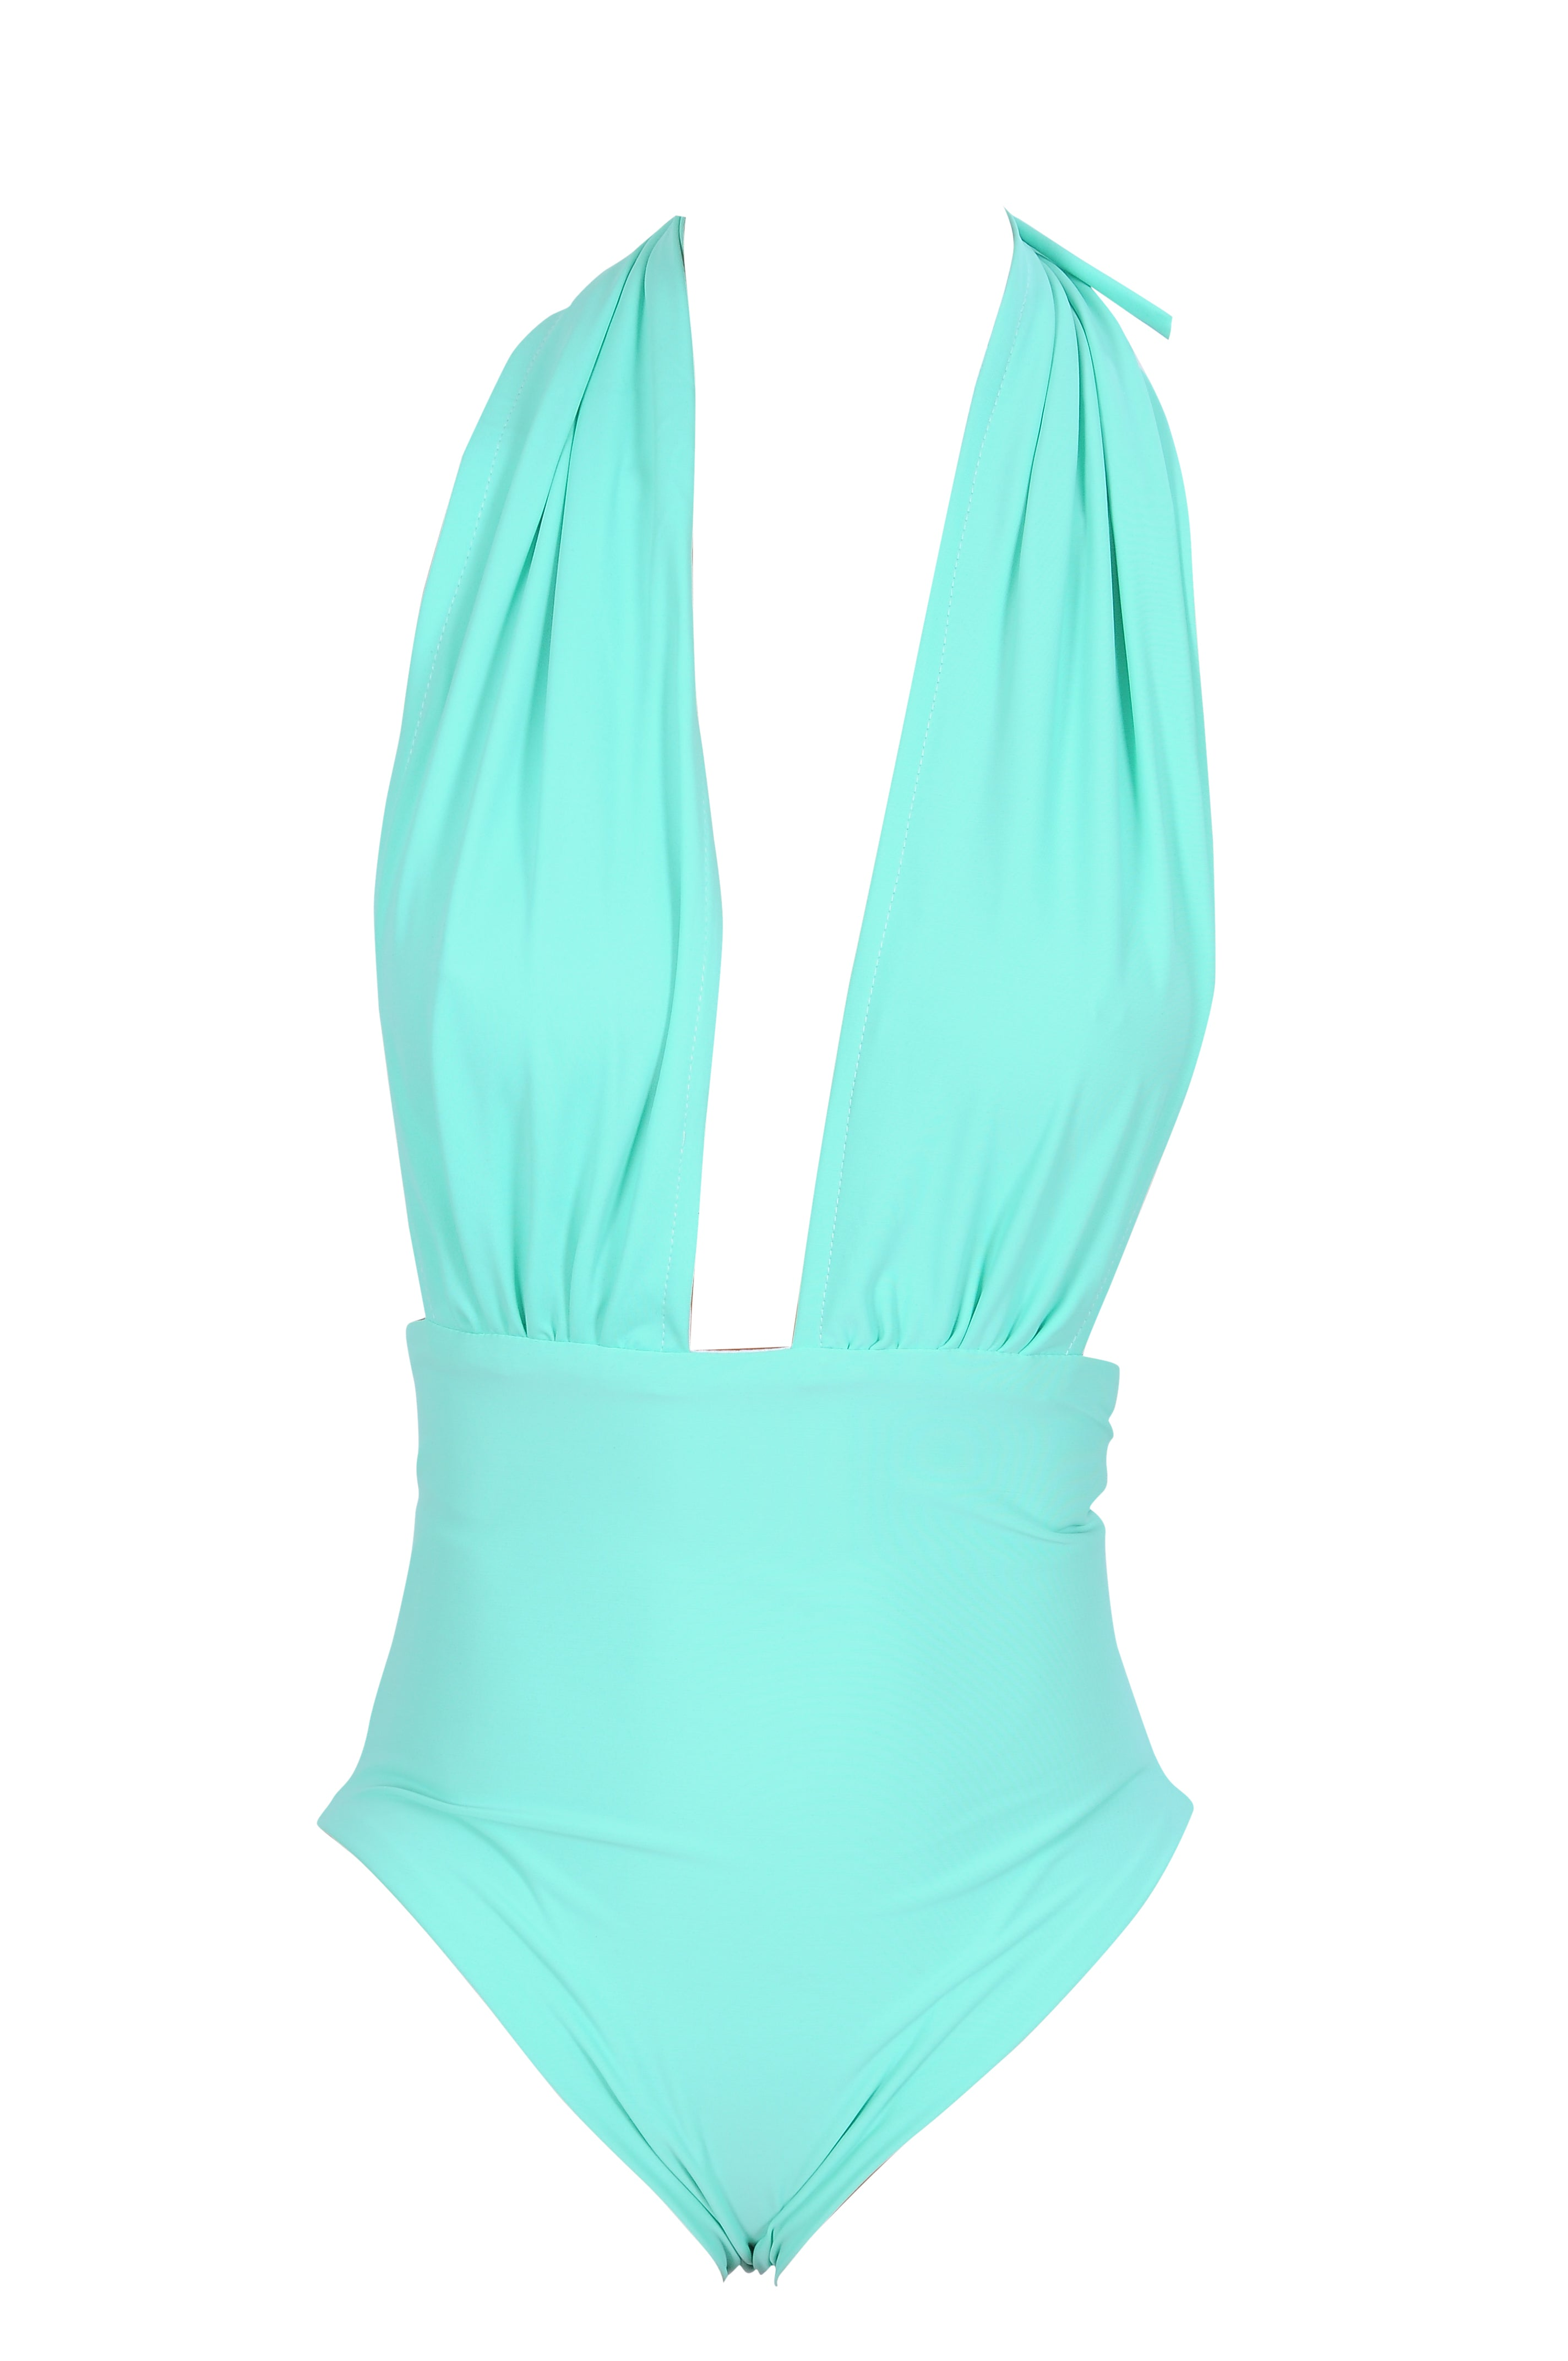 Bombshell swimsuit in Turquoise